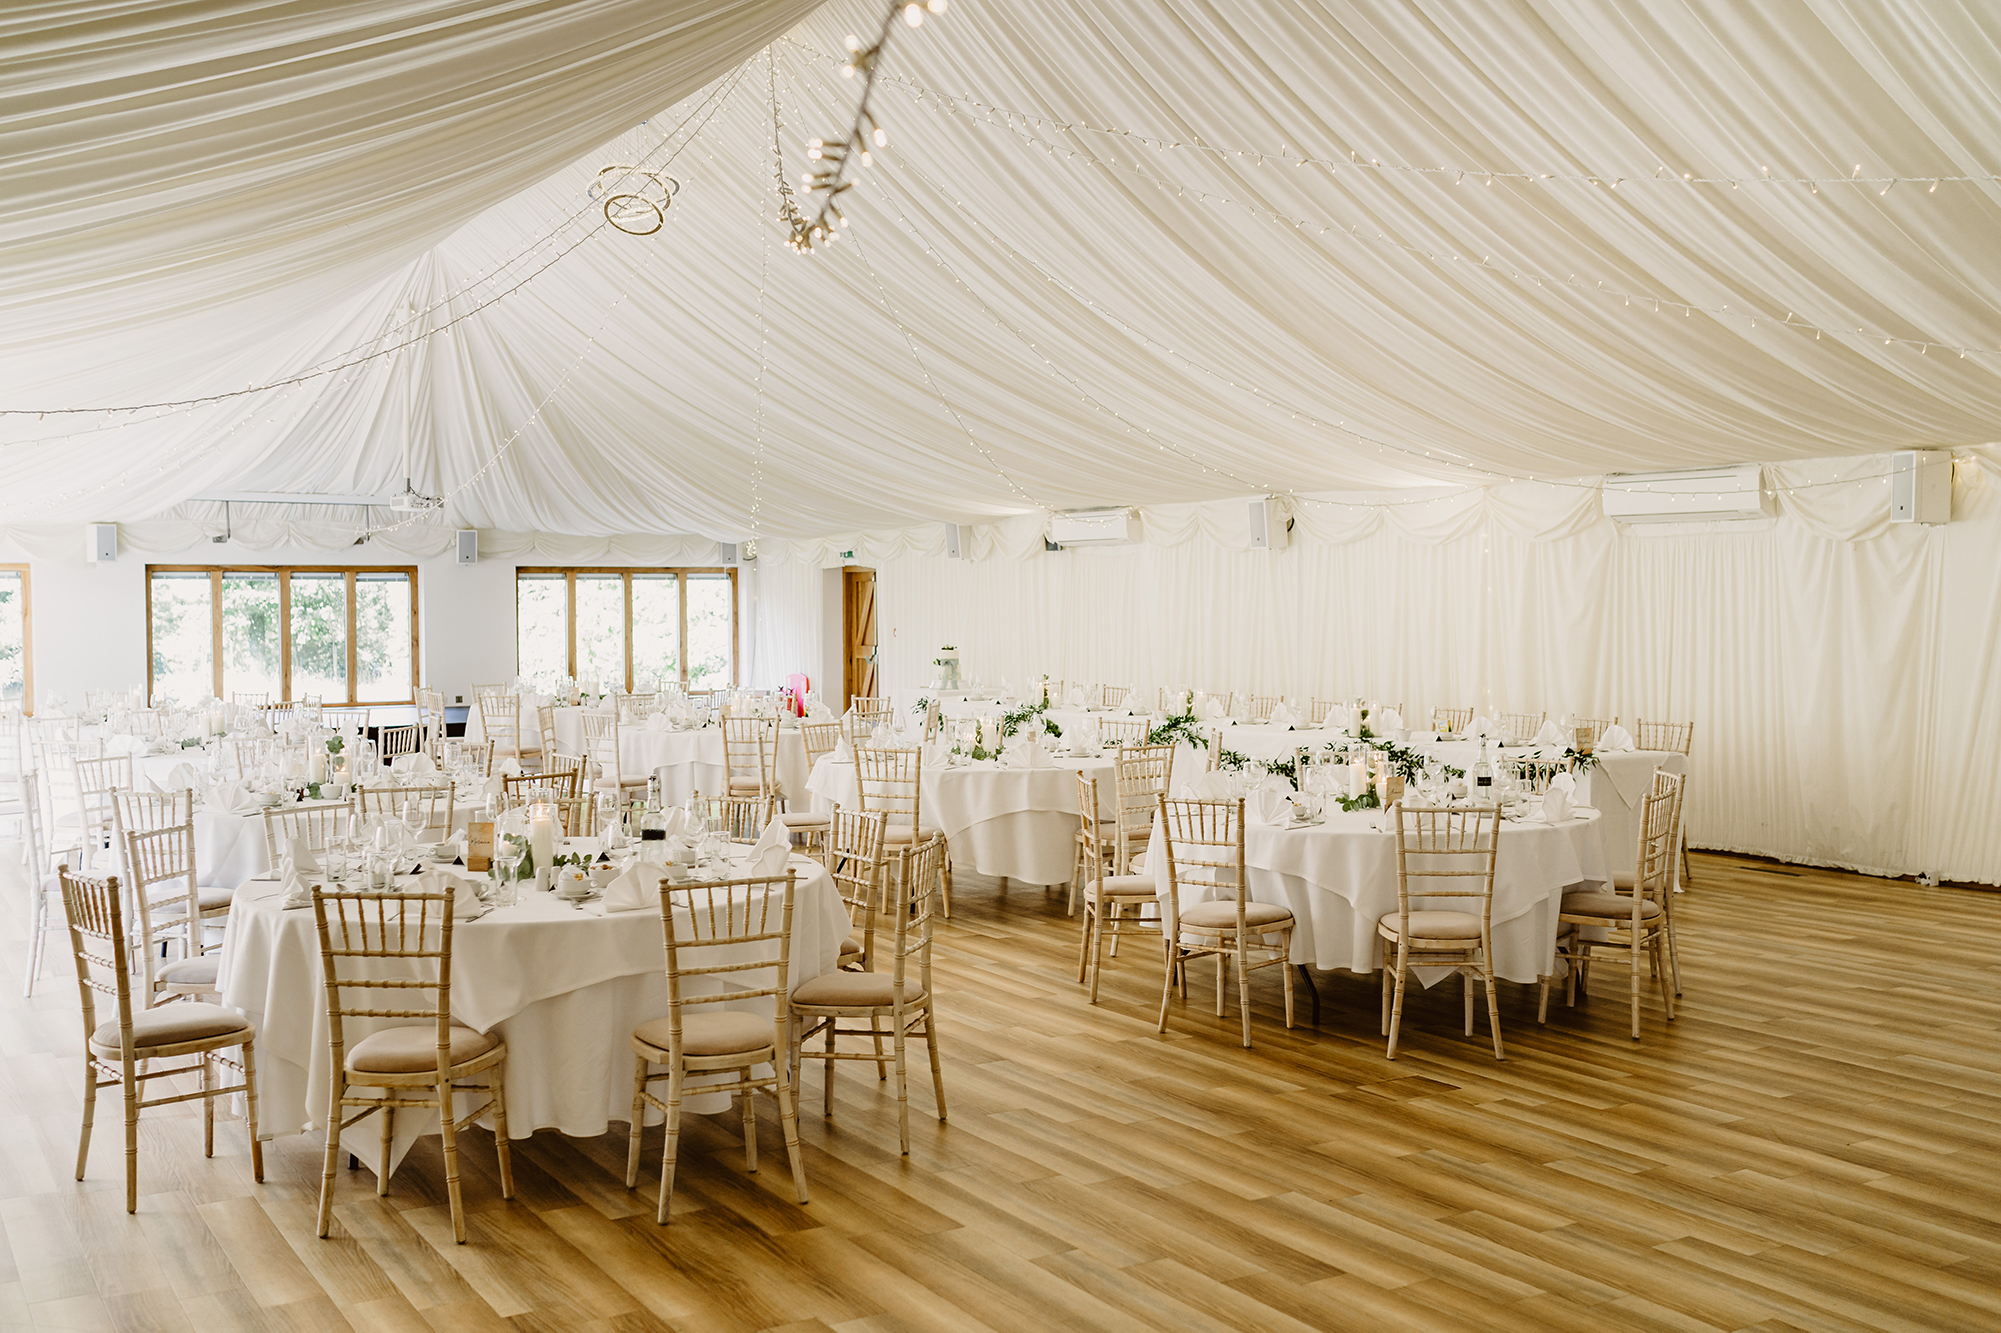 Wedding Tables Inside White Tent at Ivy House Country Hotel